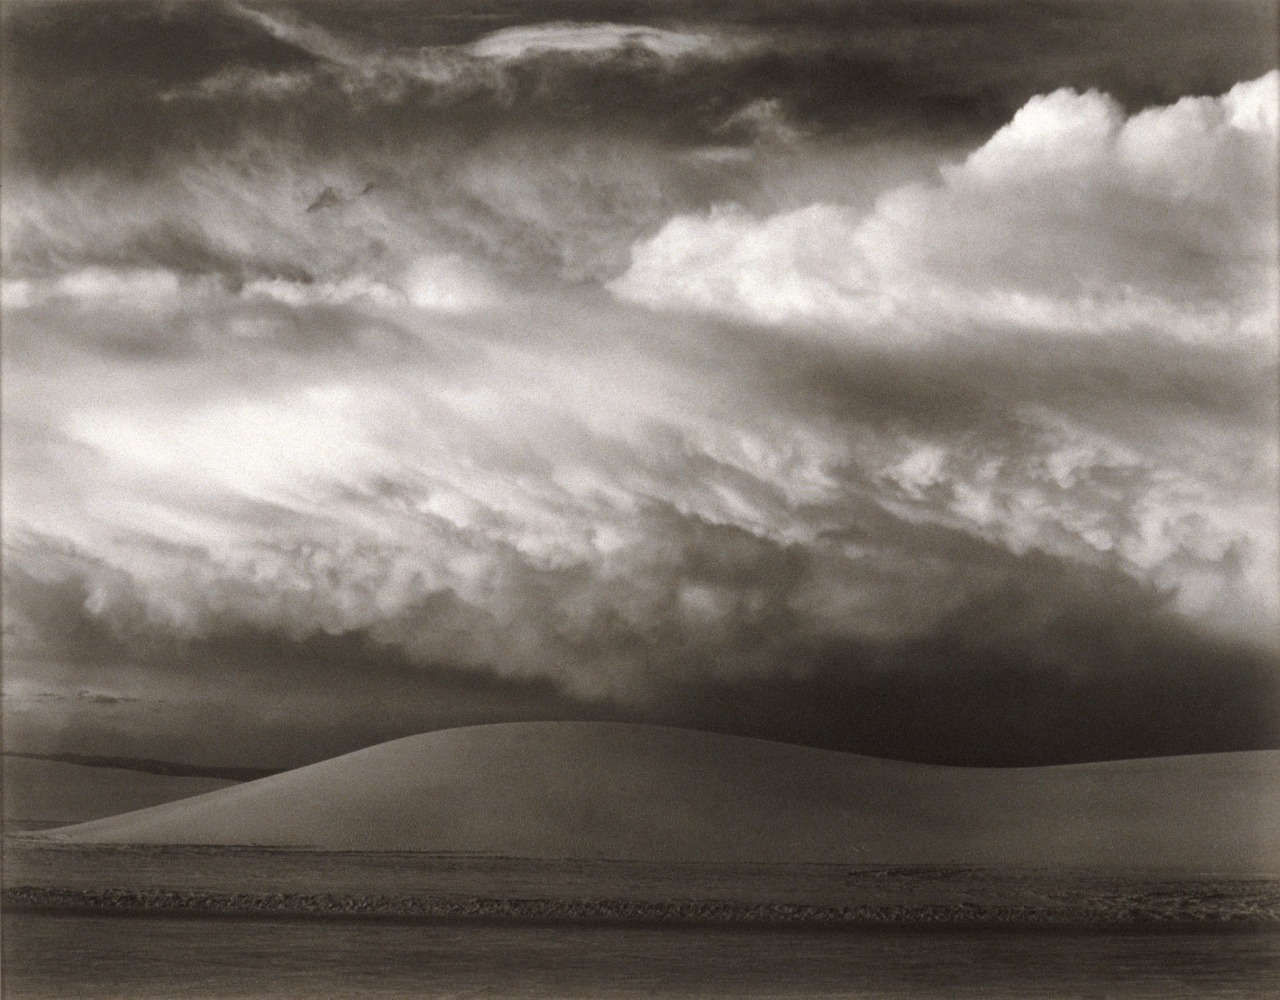 White Sands, New Mexico, 1941Edward Weston